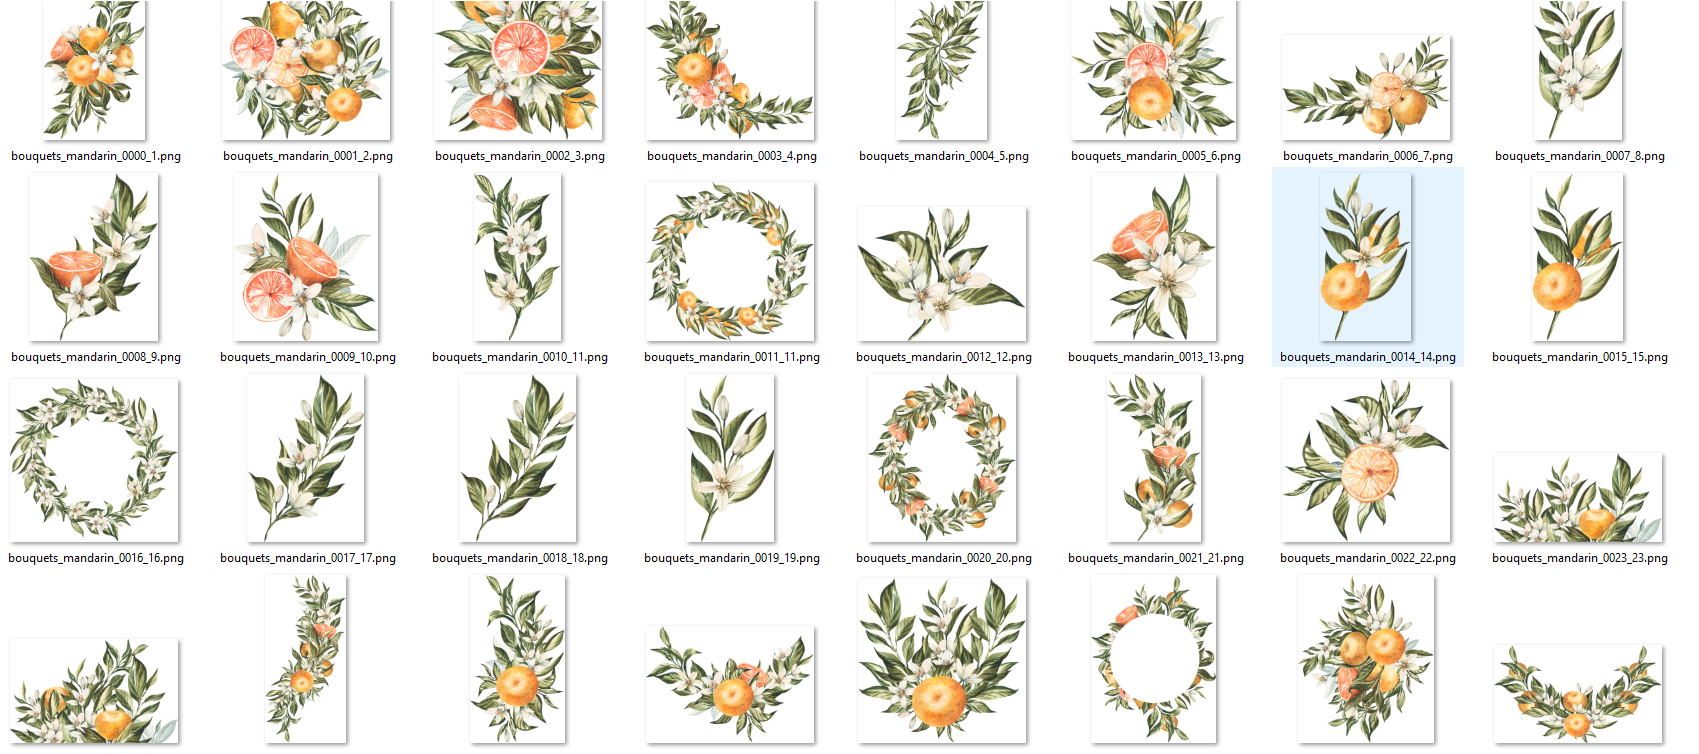 Cut-out png images of different flowers and flower motifs with the highest quality for printing on materials